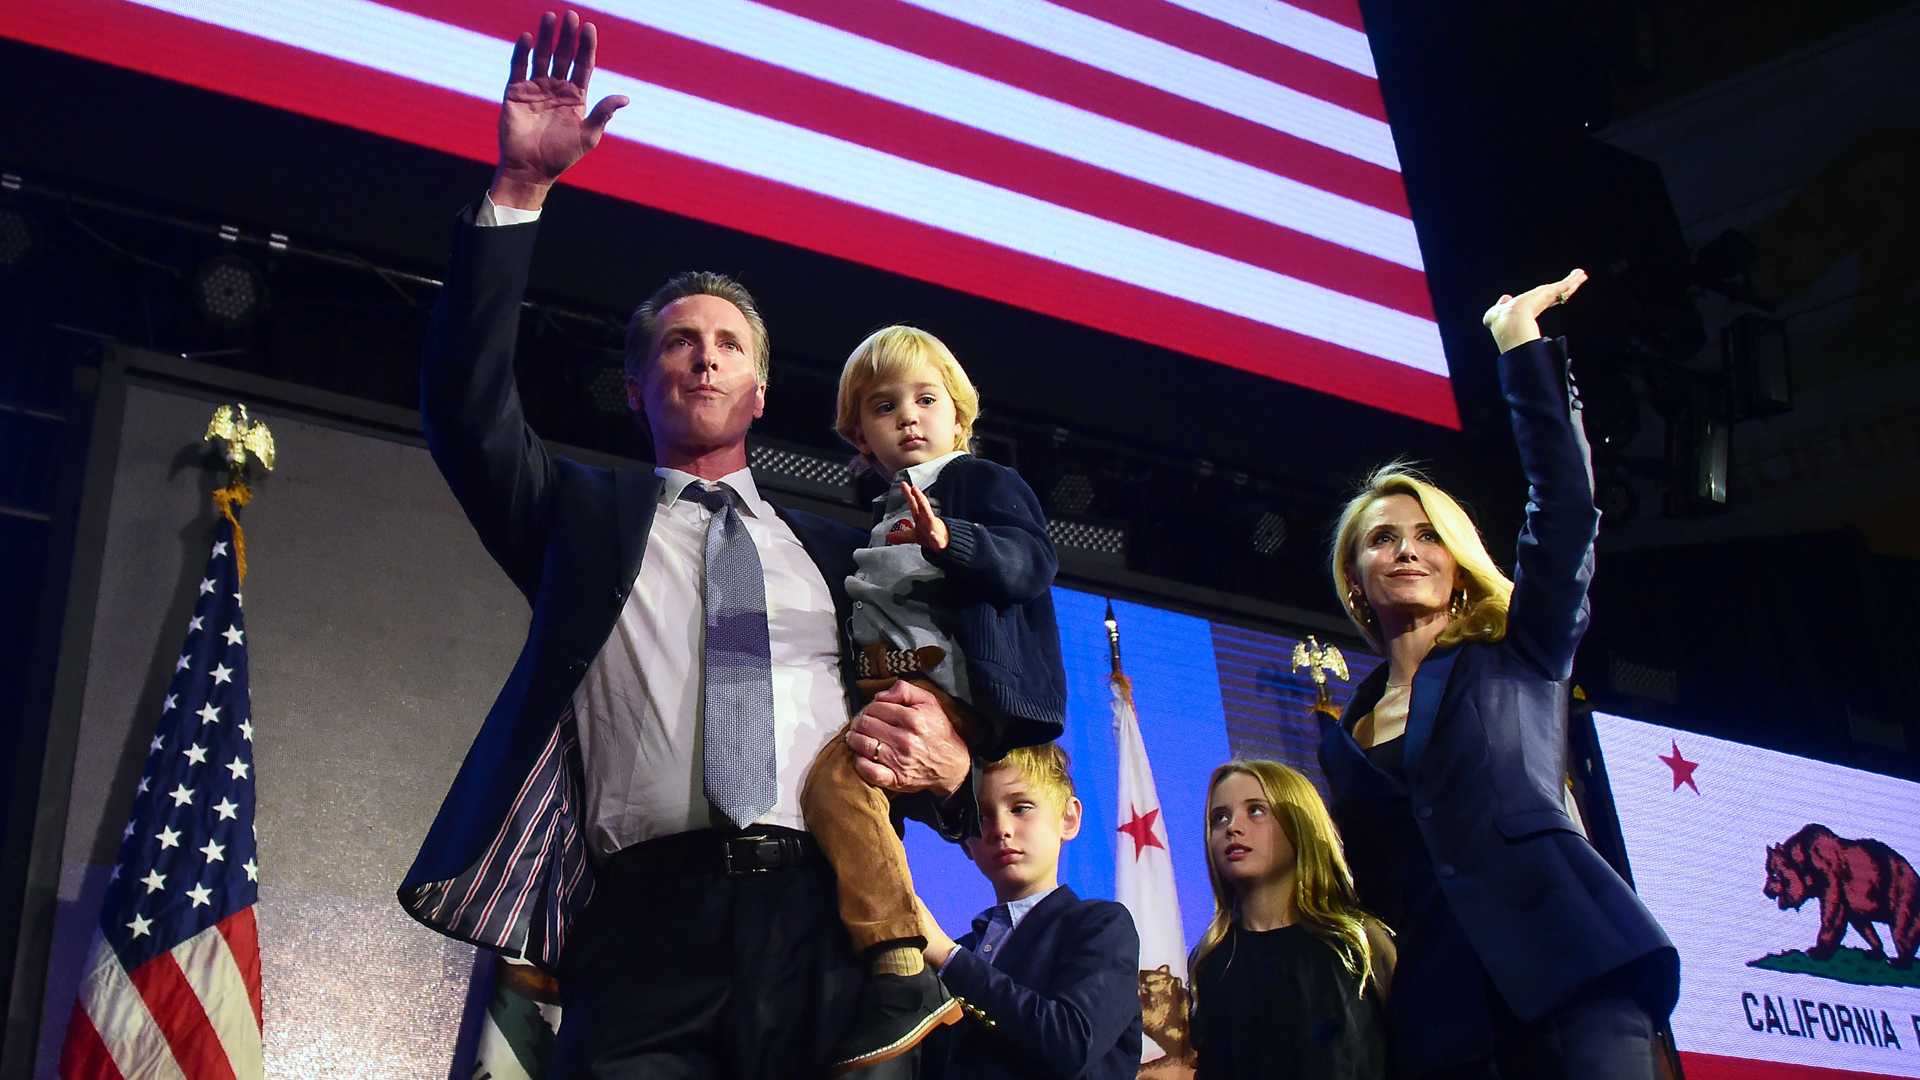 Gov.-elect Gavin Newsom and his family wave to supporters from stage at his election night watch party in Los Angeles on Nov. 6, 2018. (Credit: FREDERIC J. BROWN/AFP/Getty Images)